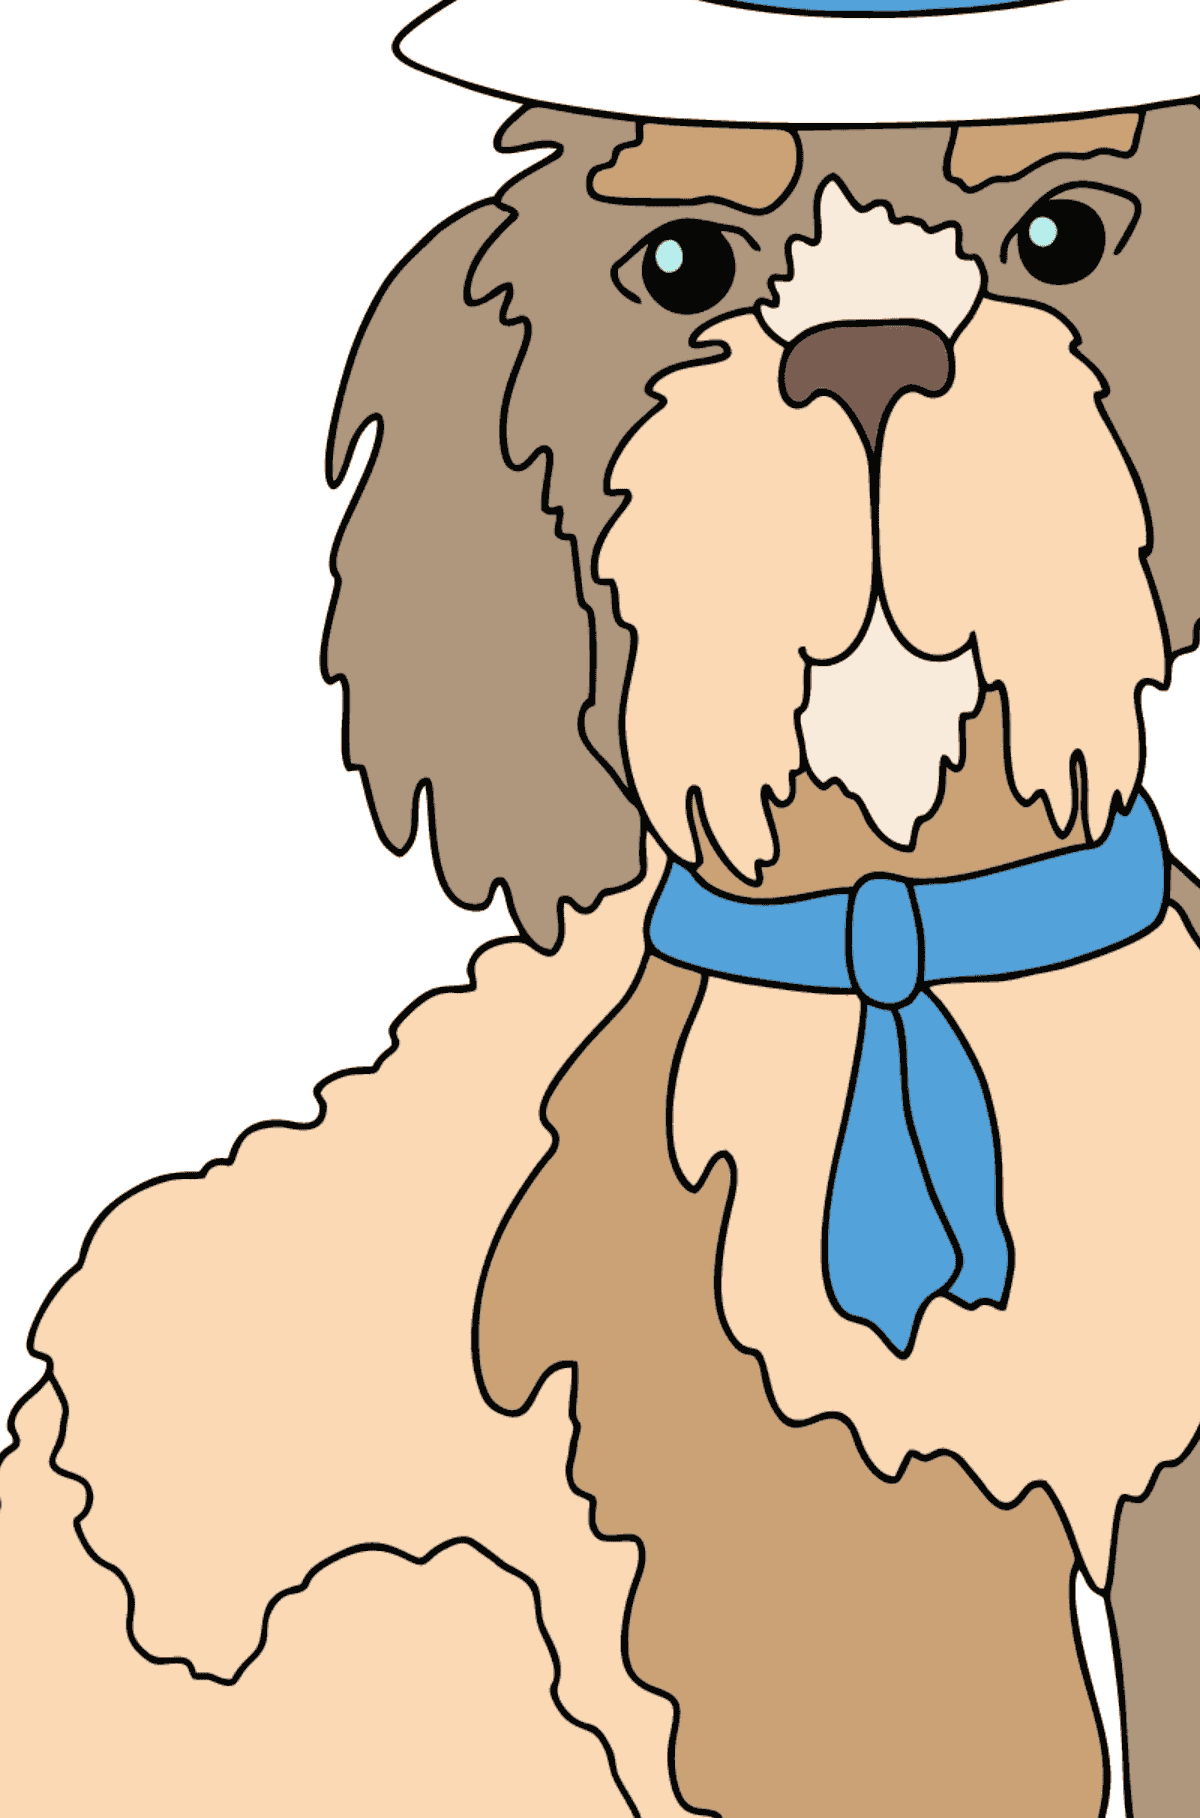 Coloring Page - A Dog in a Beautiful Hat for Children  - Color by Special Symbols